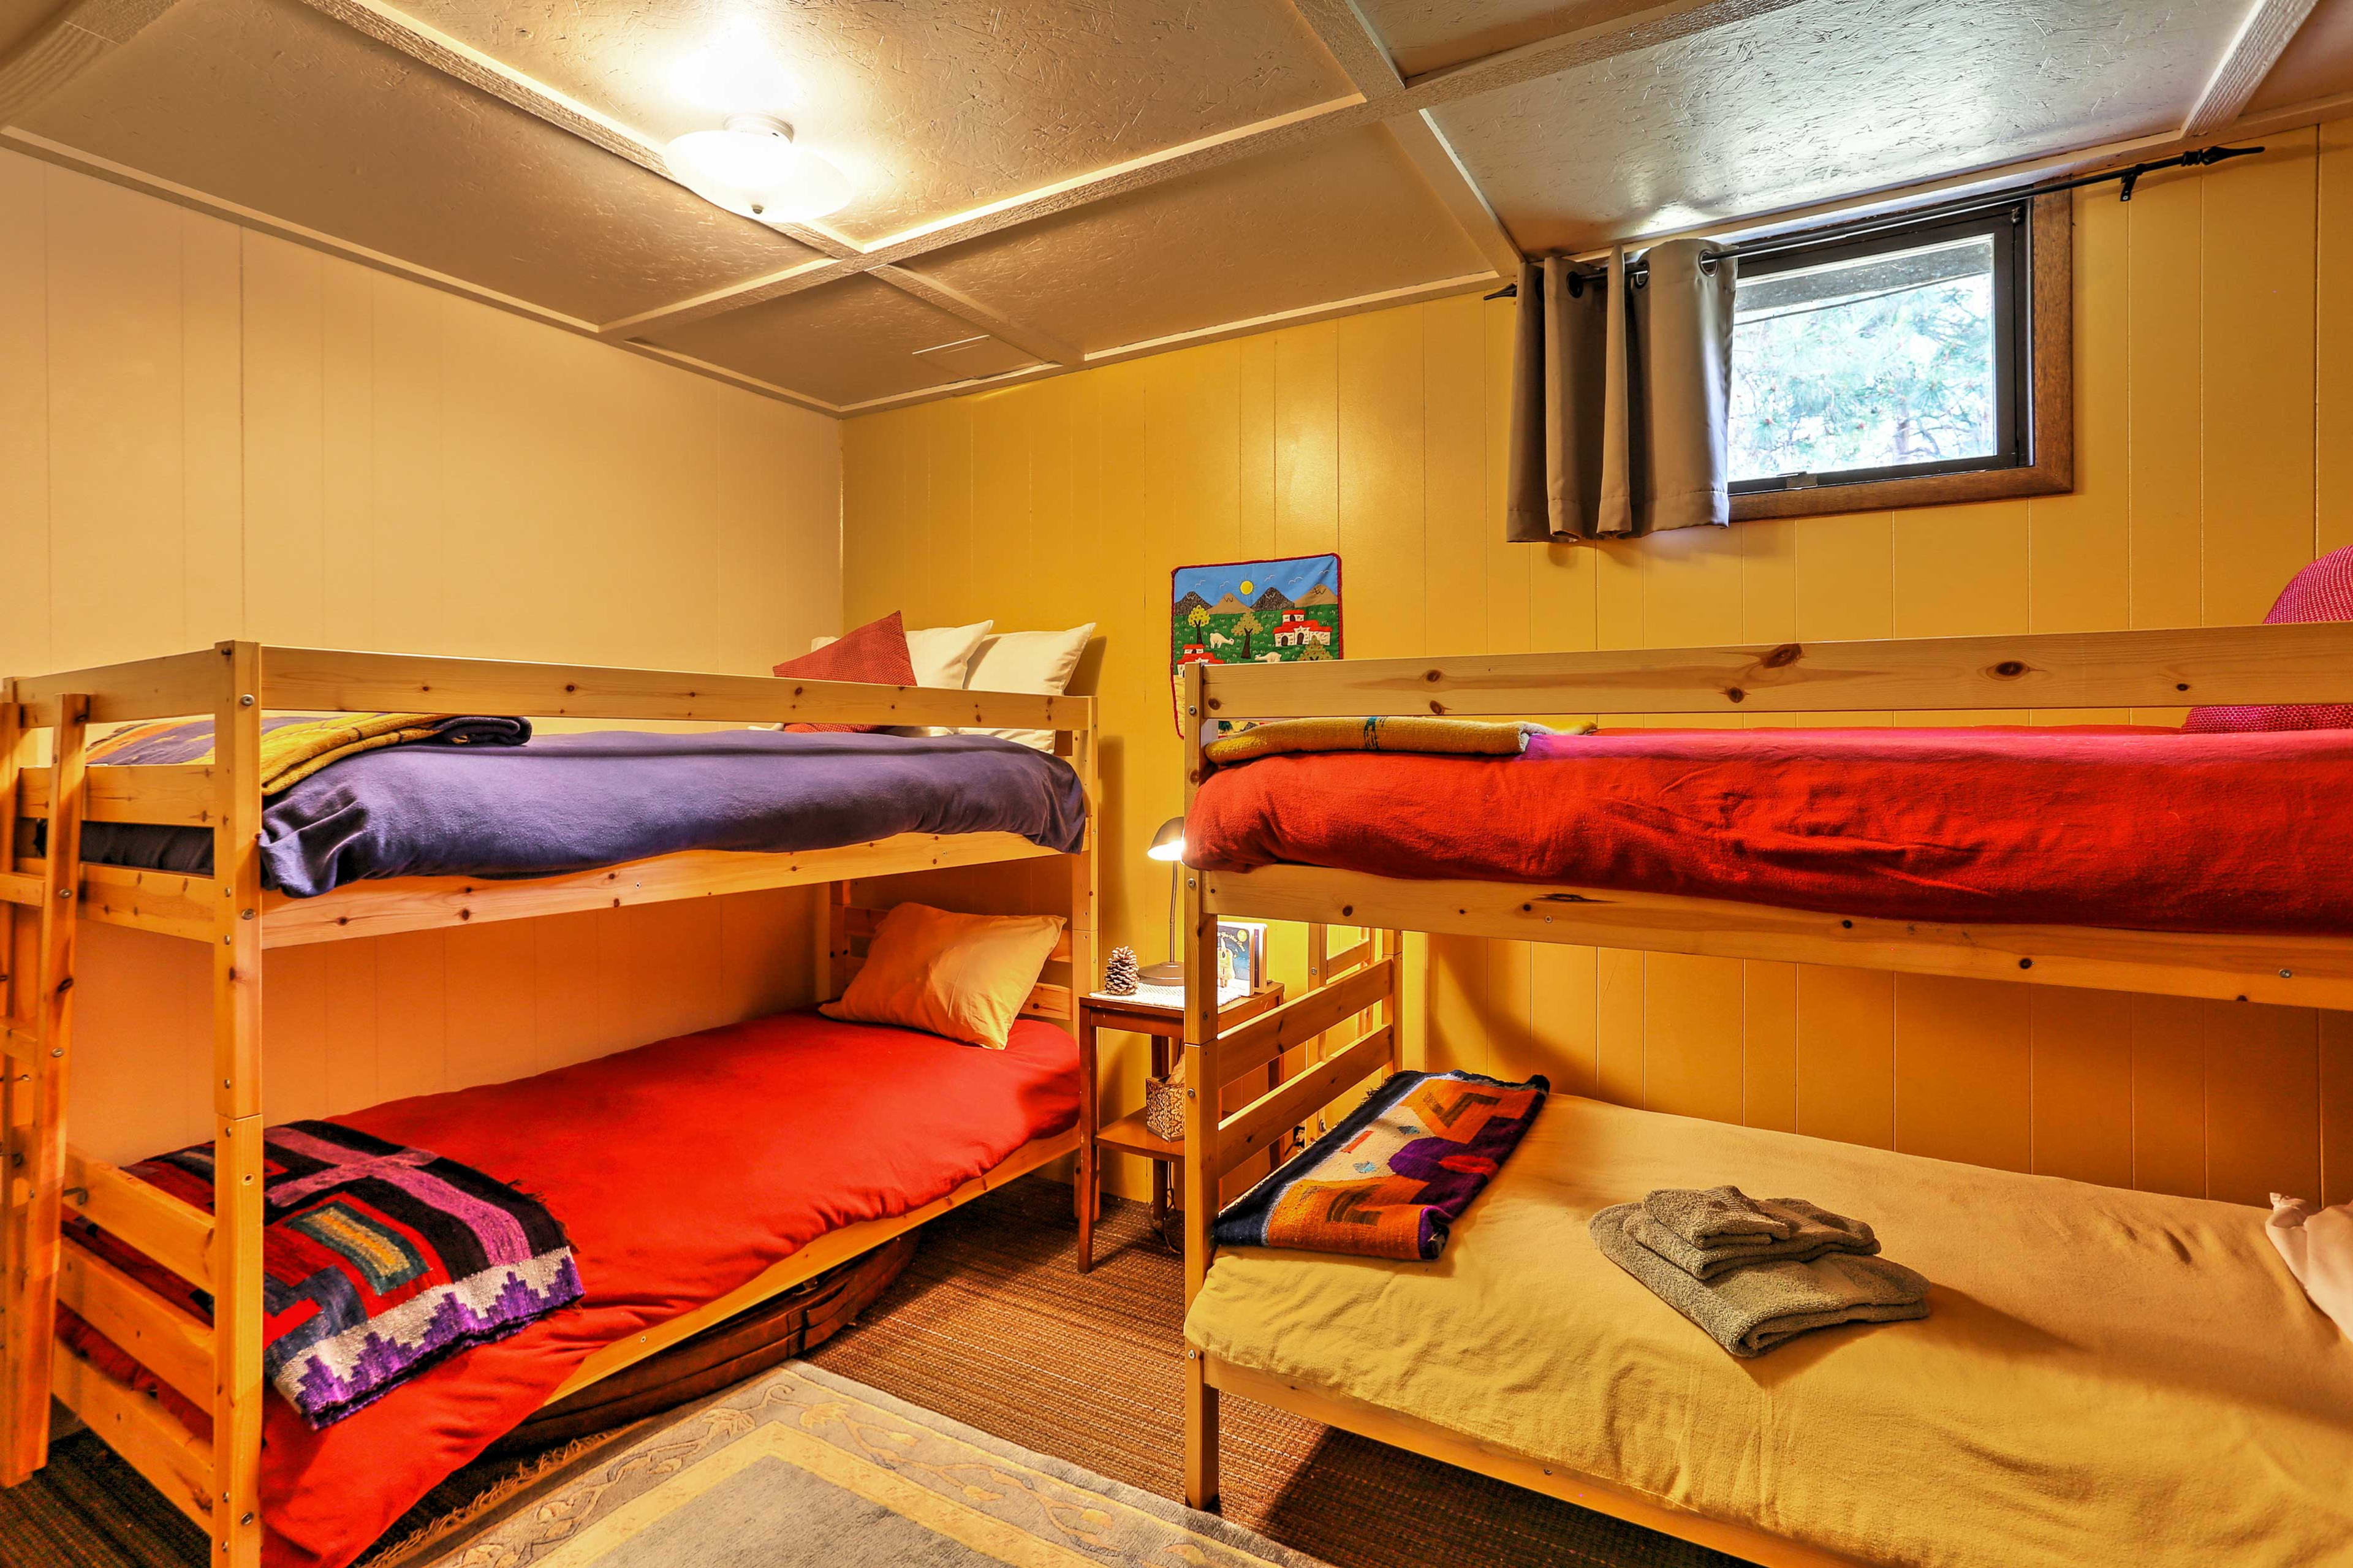 Four guests can sleep in the third bedroom, which has 2 twin-over-twin bunks.